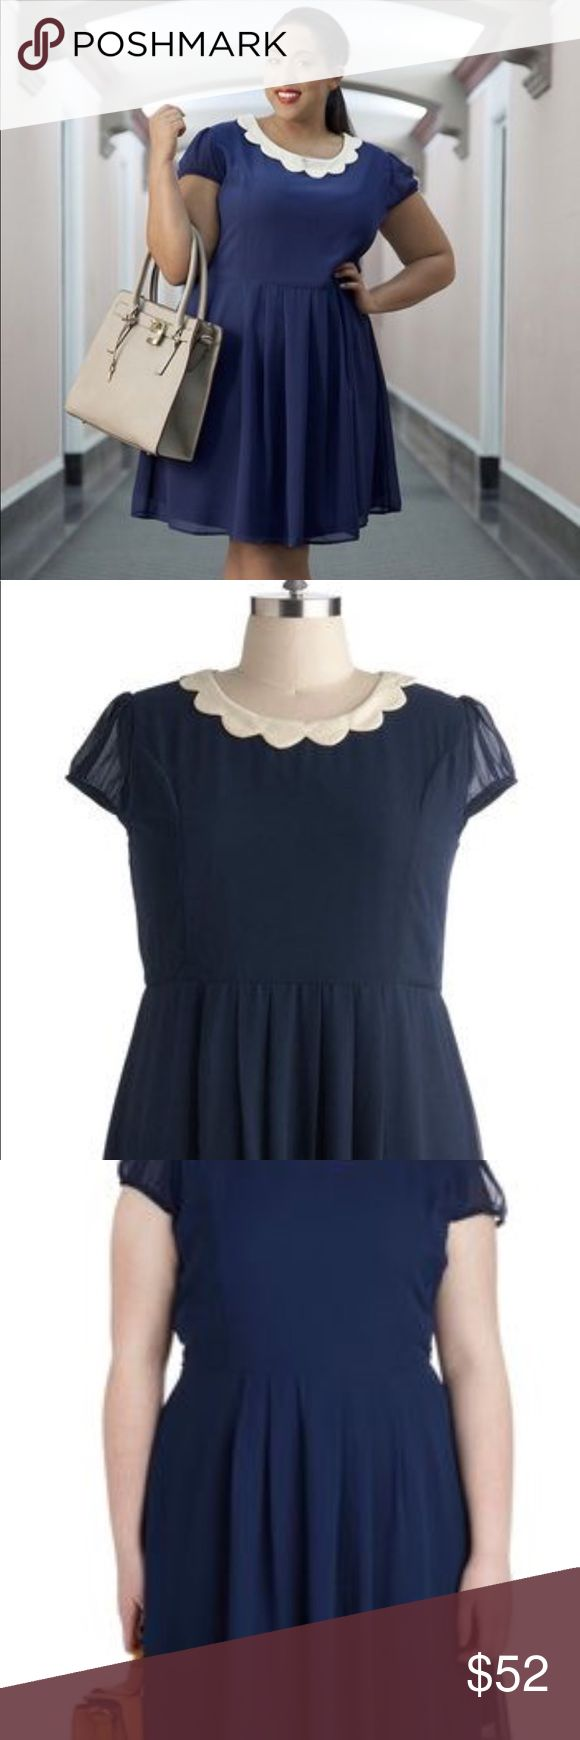 Modcloth Surprise Me Dress Absolutely gorgeous, classic navy dress with precious neckline, reminds me of Olive Oyl from Popeye! Only worn a few times, this is in perfect condition! Navy and cream 3x. Modcloth Dresses Midi